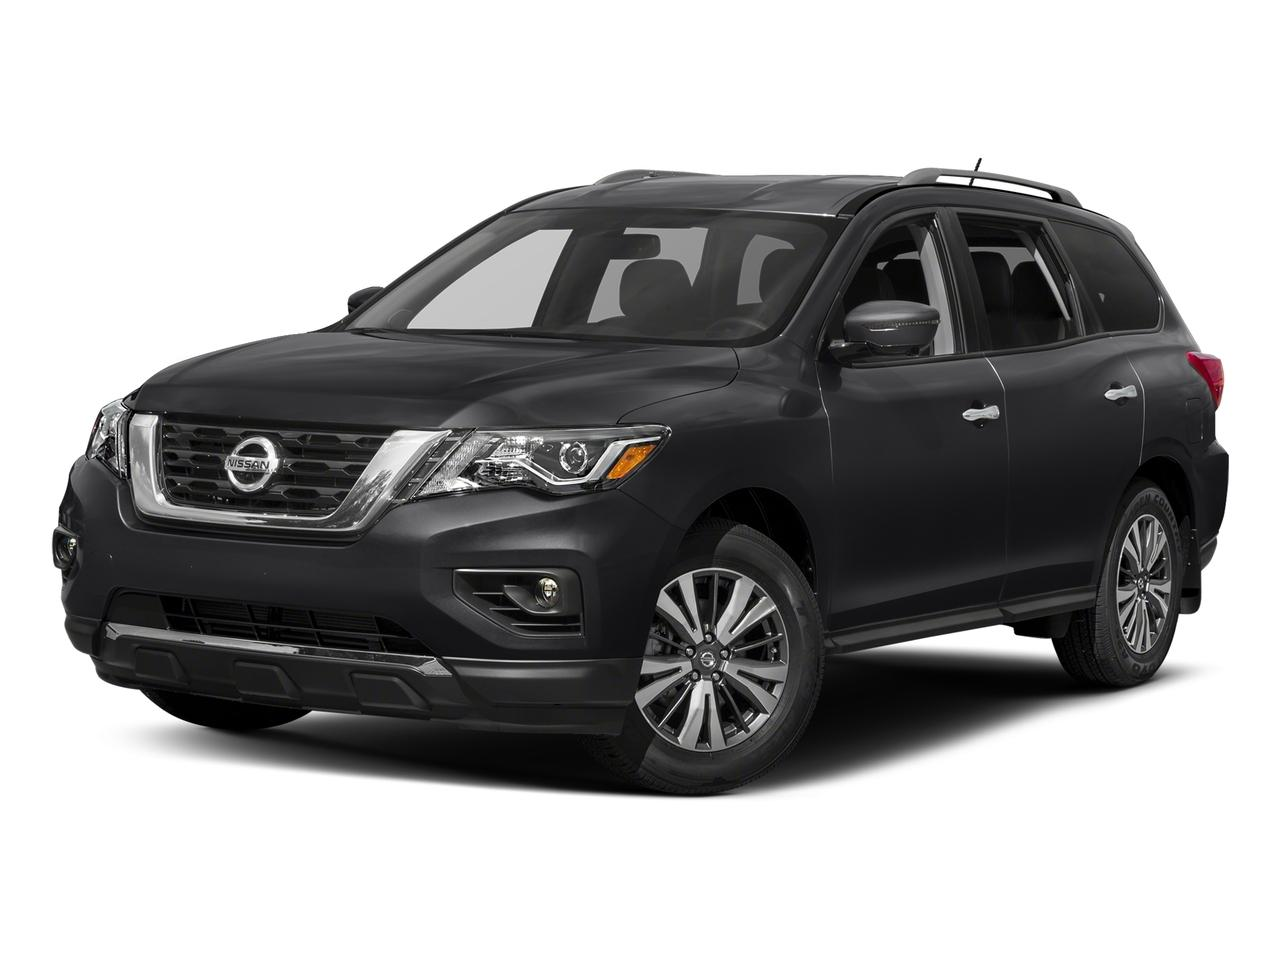 2017 Nissan Pathfinder Vehicle Photo in Concord, NC 28027